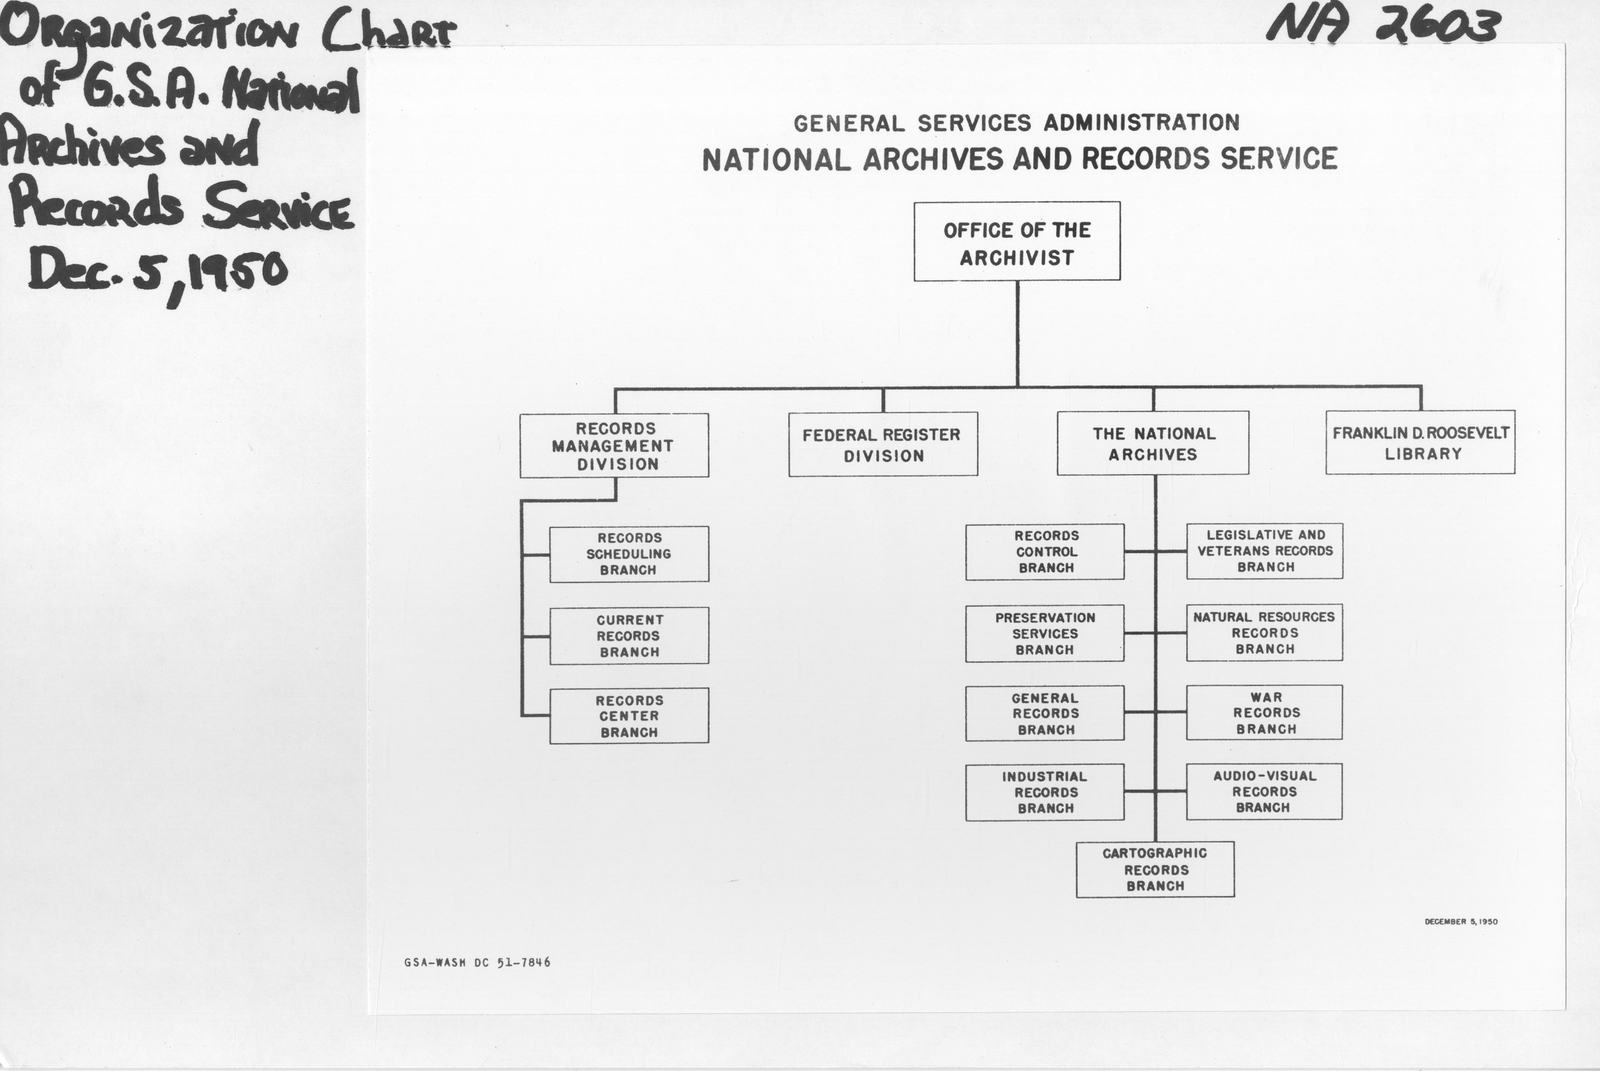 Organization Chart of GSA (General Services Administration) National Archives and Records Service - U.S. National Archives Public Domain Search